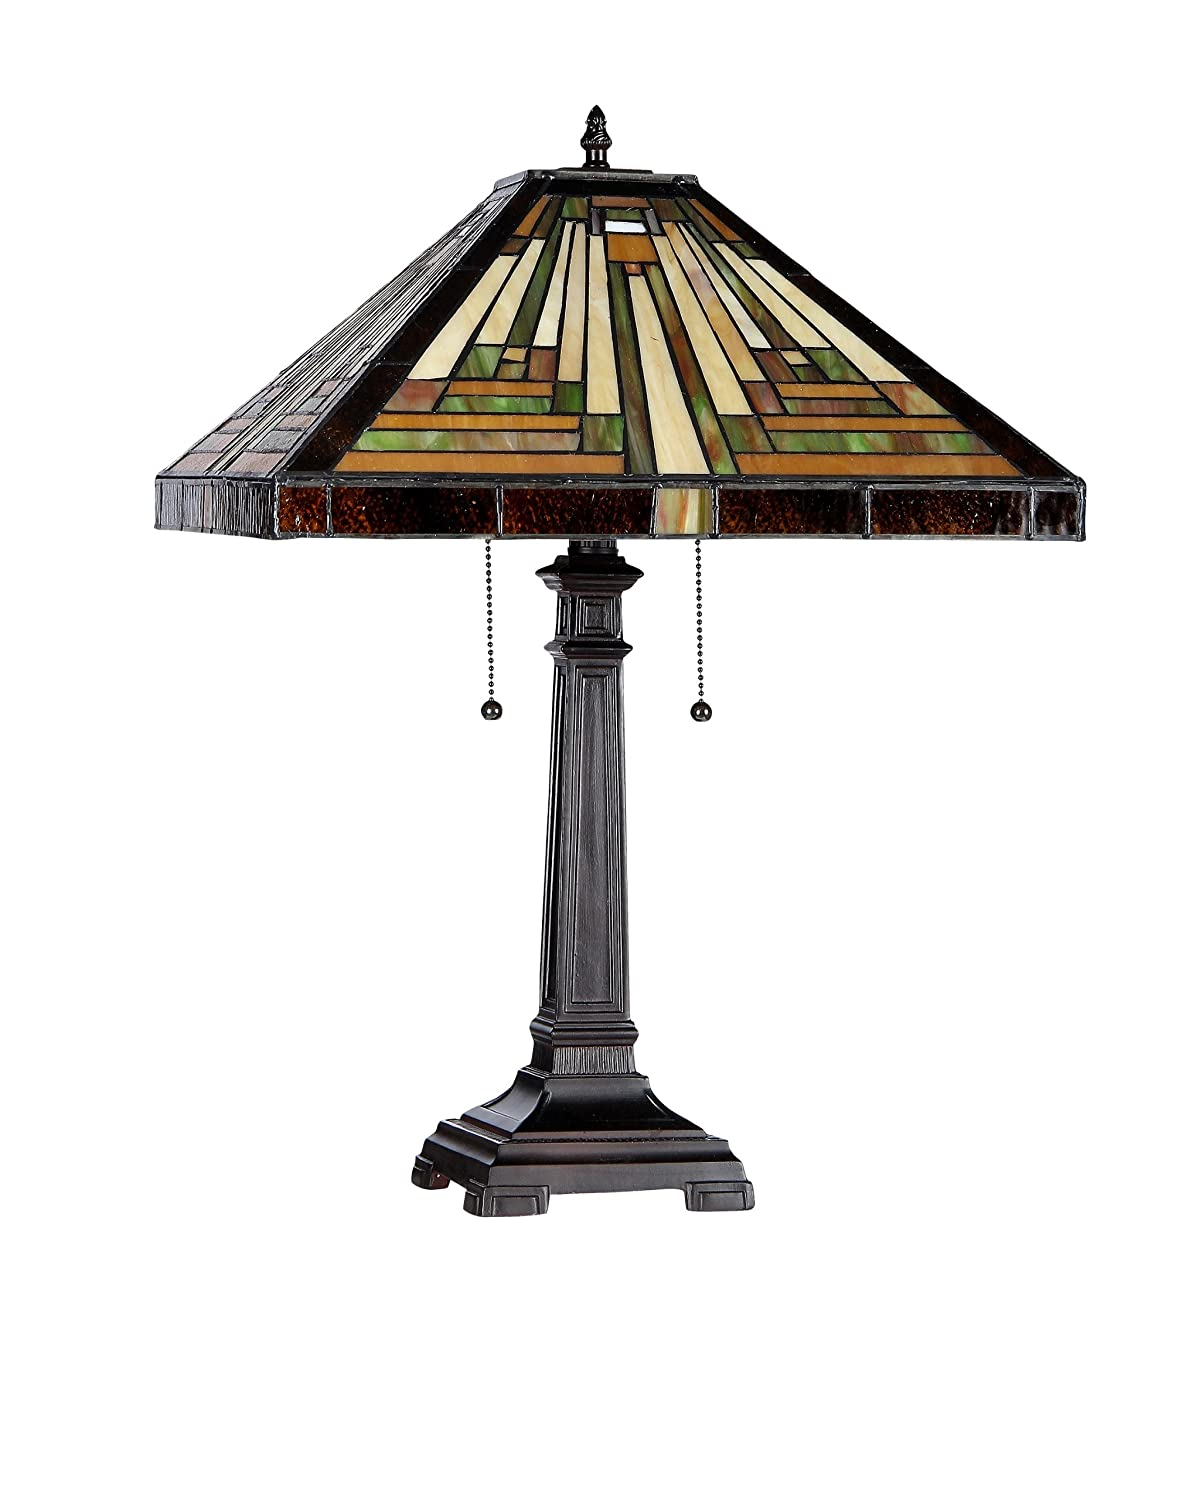 Chloe Lighting CH33359MR16 TL2 Innes Tiffany Style Mission 2 Light Table  Lamp 16 Inch Shade   Tiffany Style Table Lamps   Amazon.com